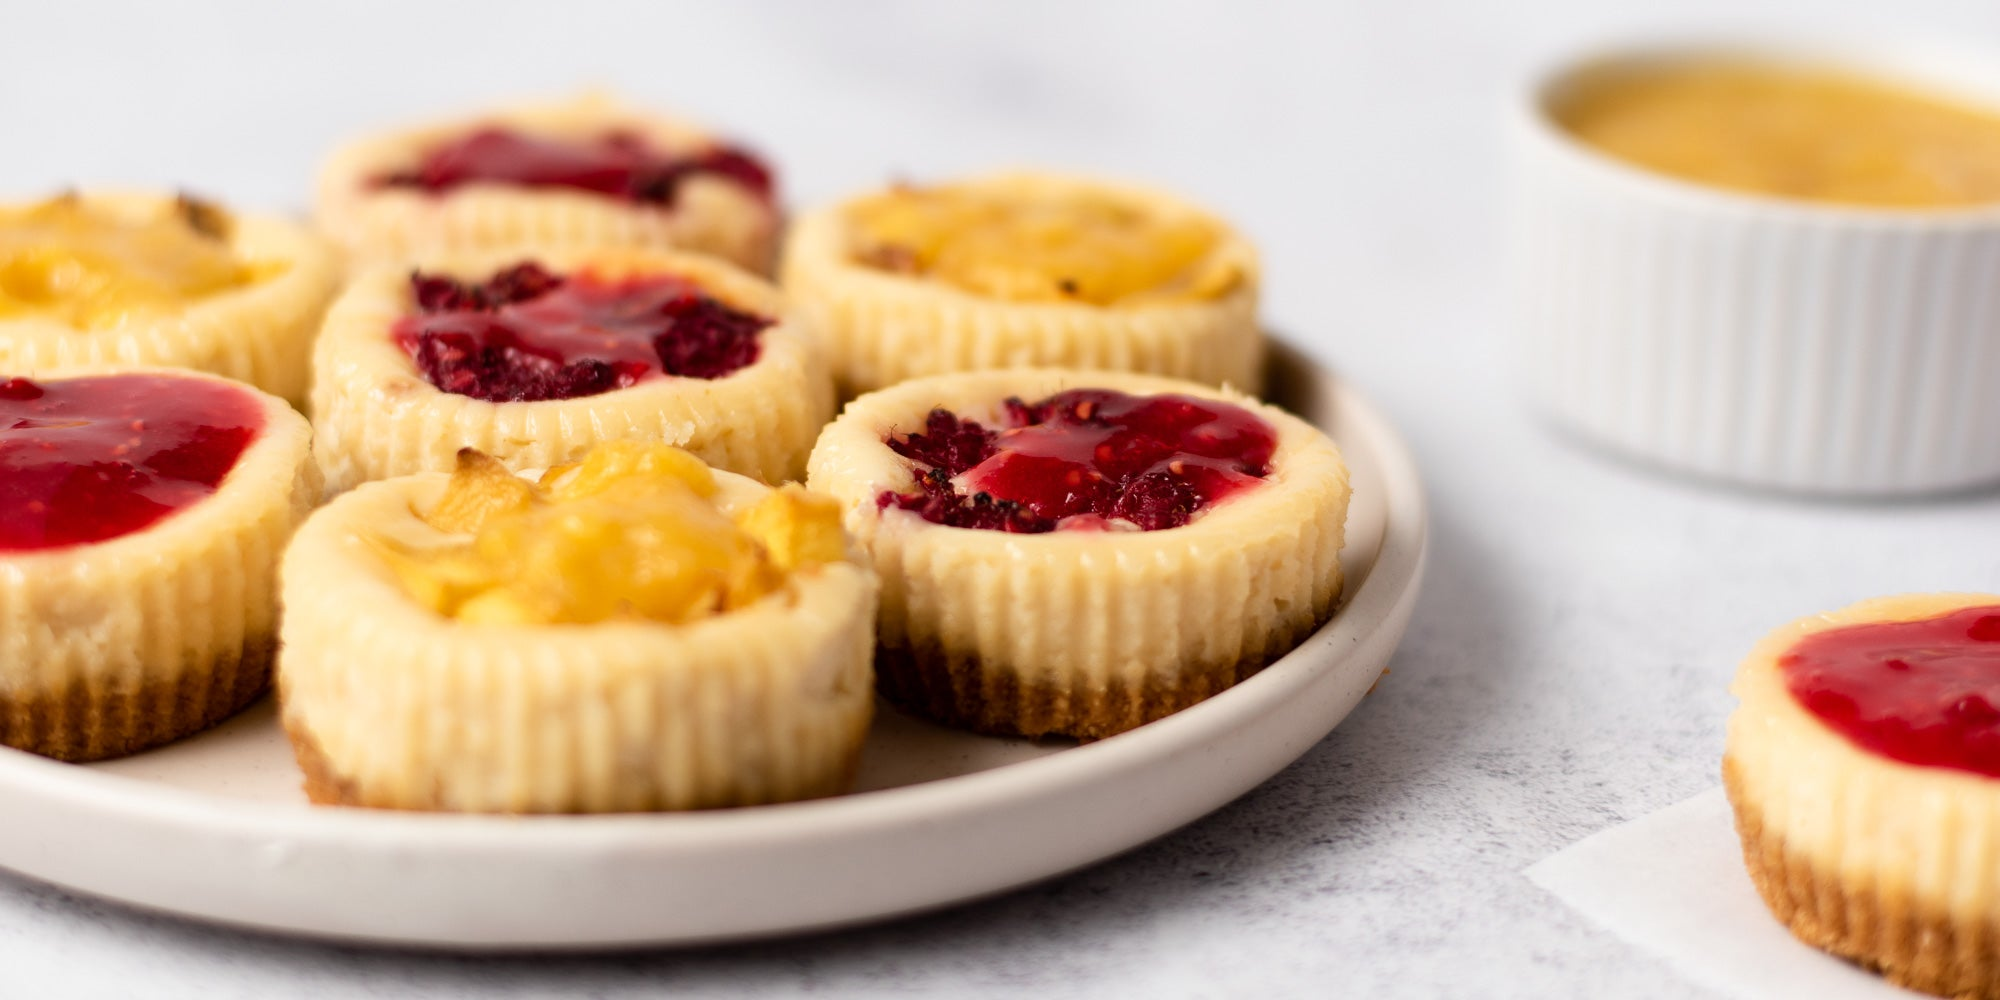 Plate of mini cheesecakes topped with fruit